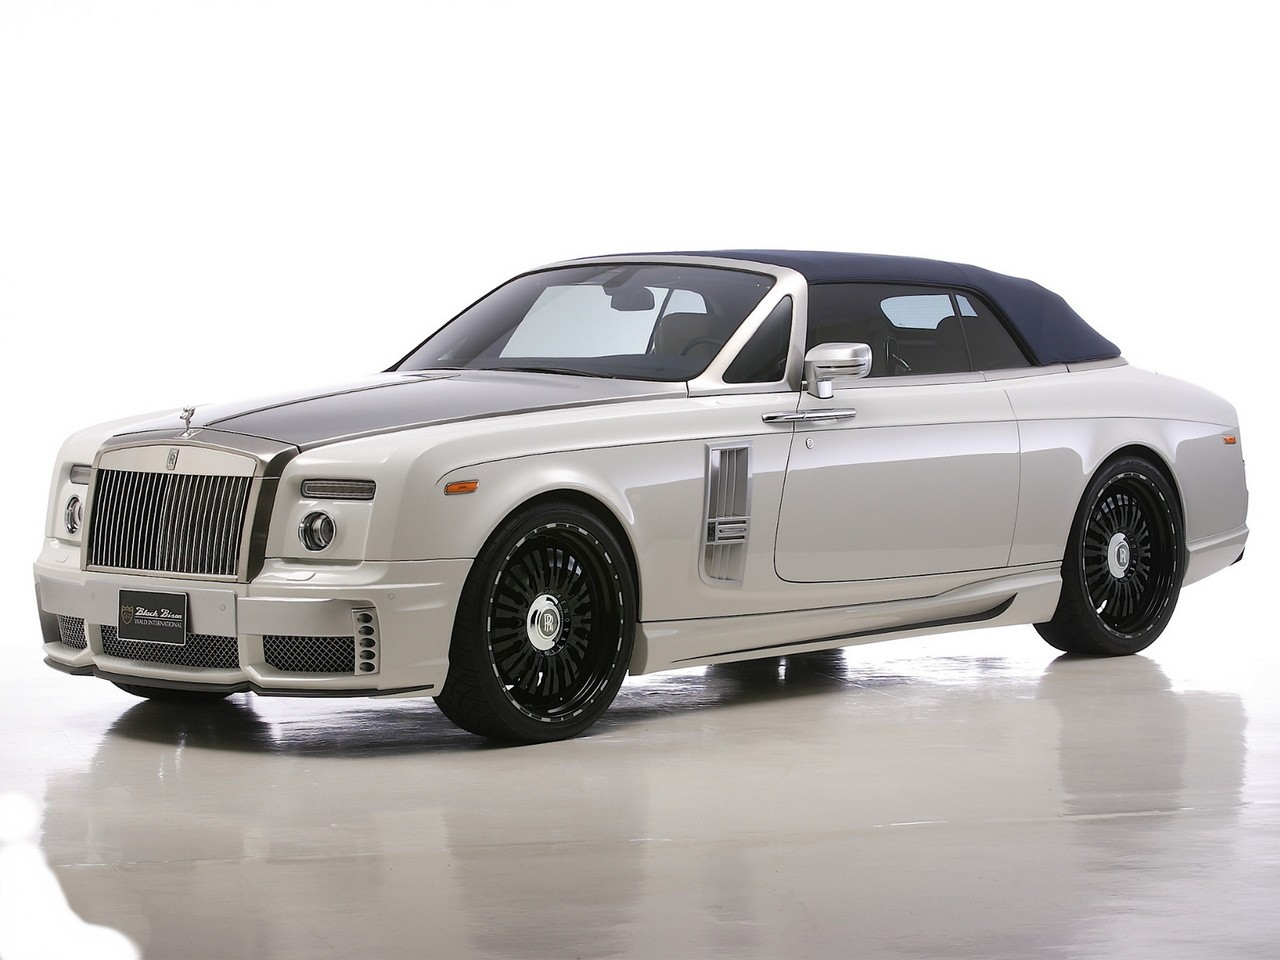 2012 Wald Rolls Royce Phantom Drophead Coupeb Black Bison Edition